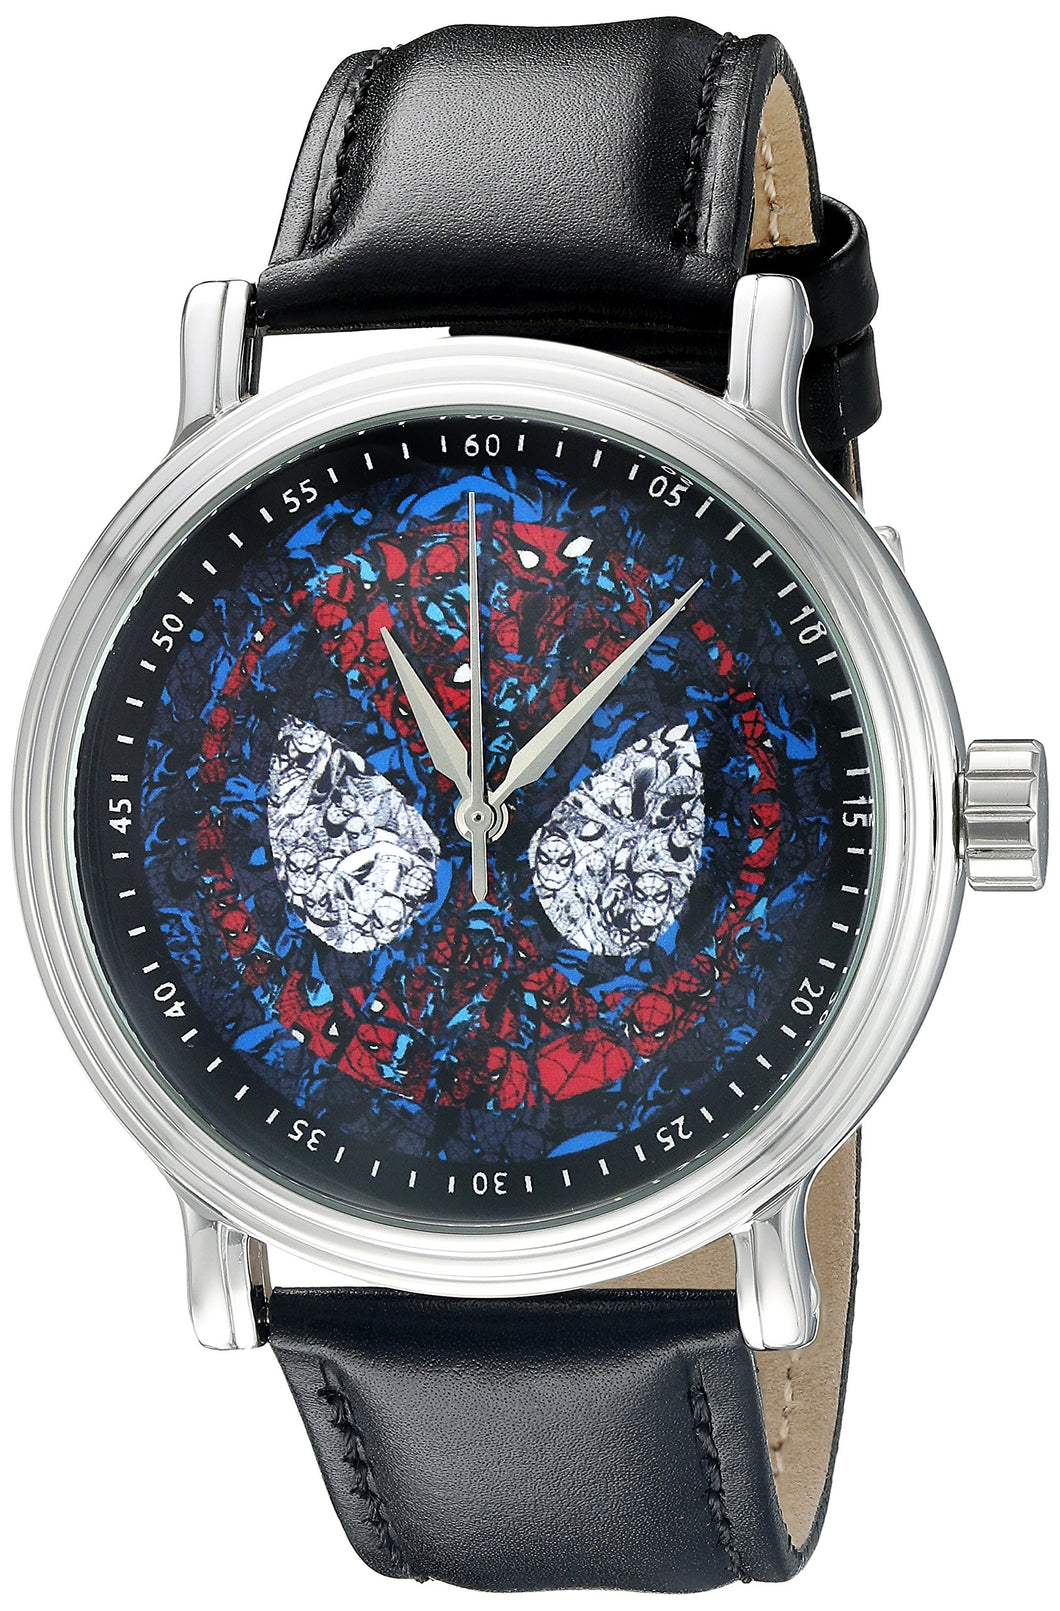 Marvel Spider-Man Men's W002541 Spider-Man Analog Display Analog Quartz Black Watch